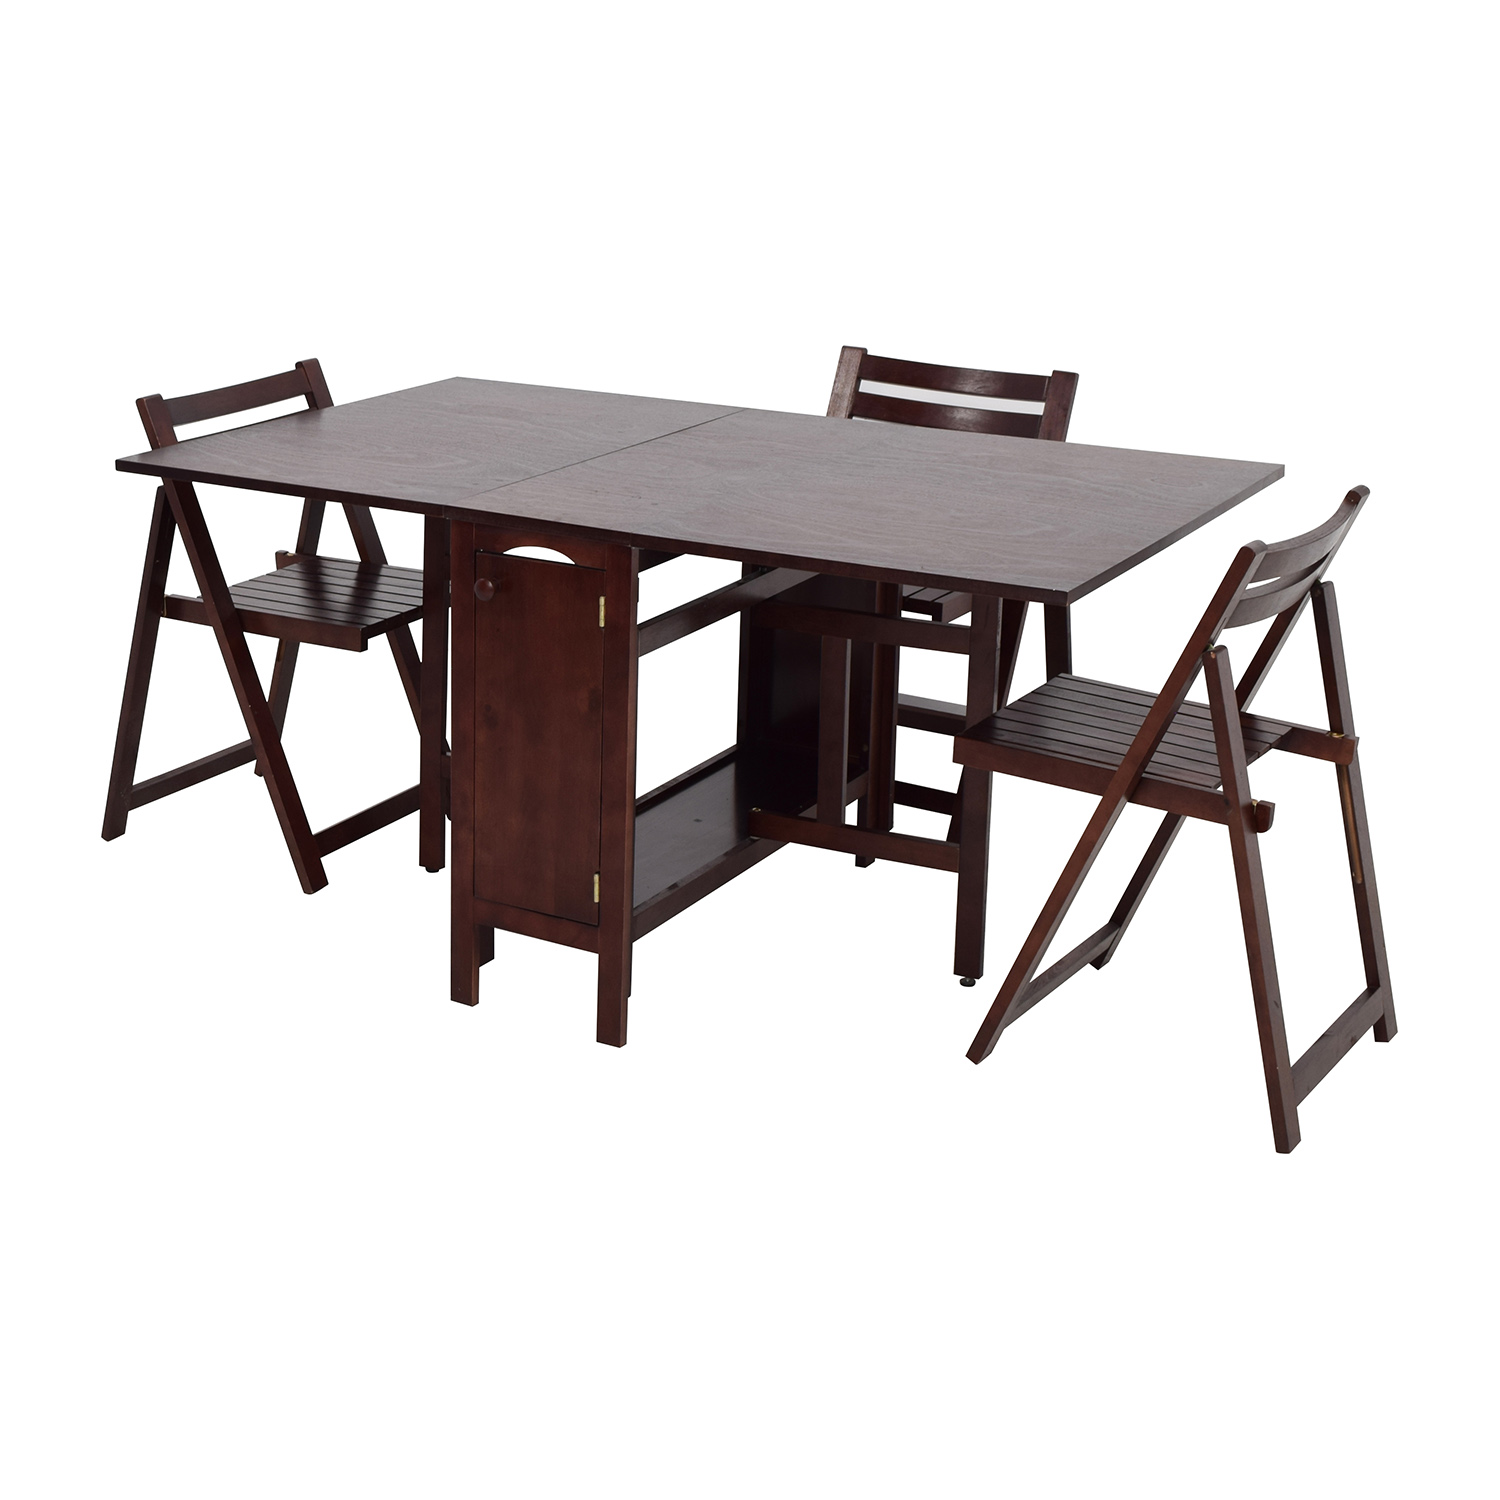 100 Fold Up Kitchen Table 75 Off Bowery Kitchen  : second hand storable kitchen table with folding chairs from 45.76.66.238 size 1500 x 1500 jpeg 272kB